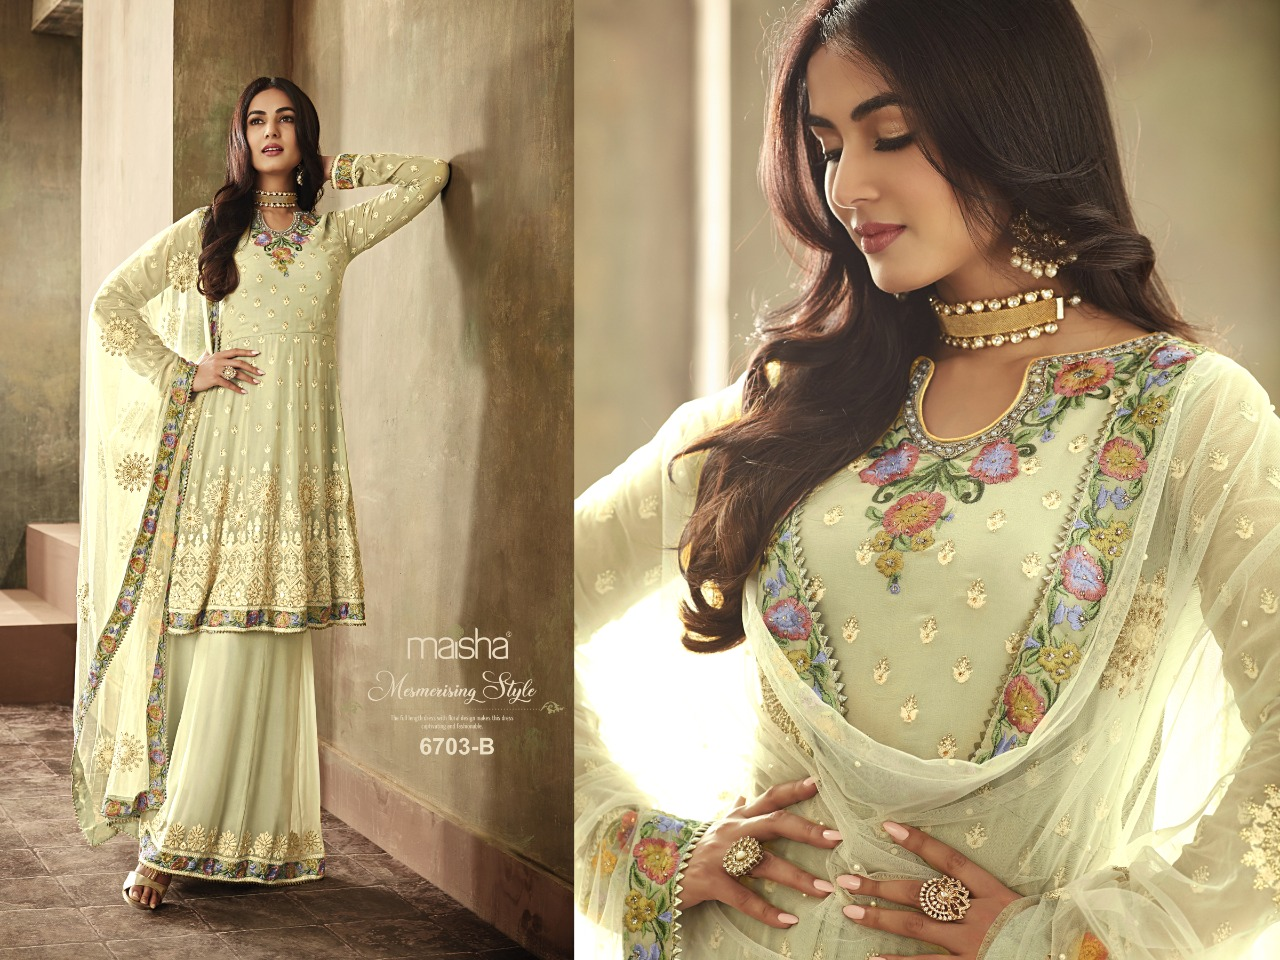 Maisha 6703 Designer Heavy Faux Georgette Embroidery & Stone Work  Wedding Suit Catalog at Wholesale rate